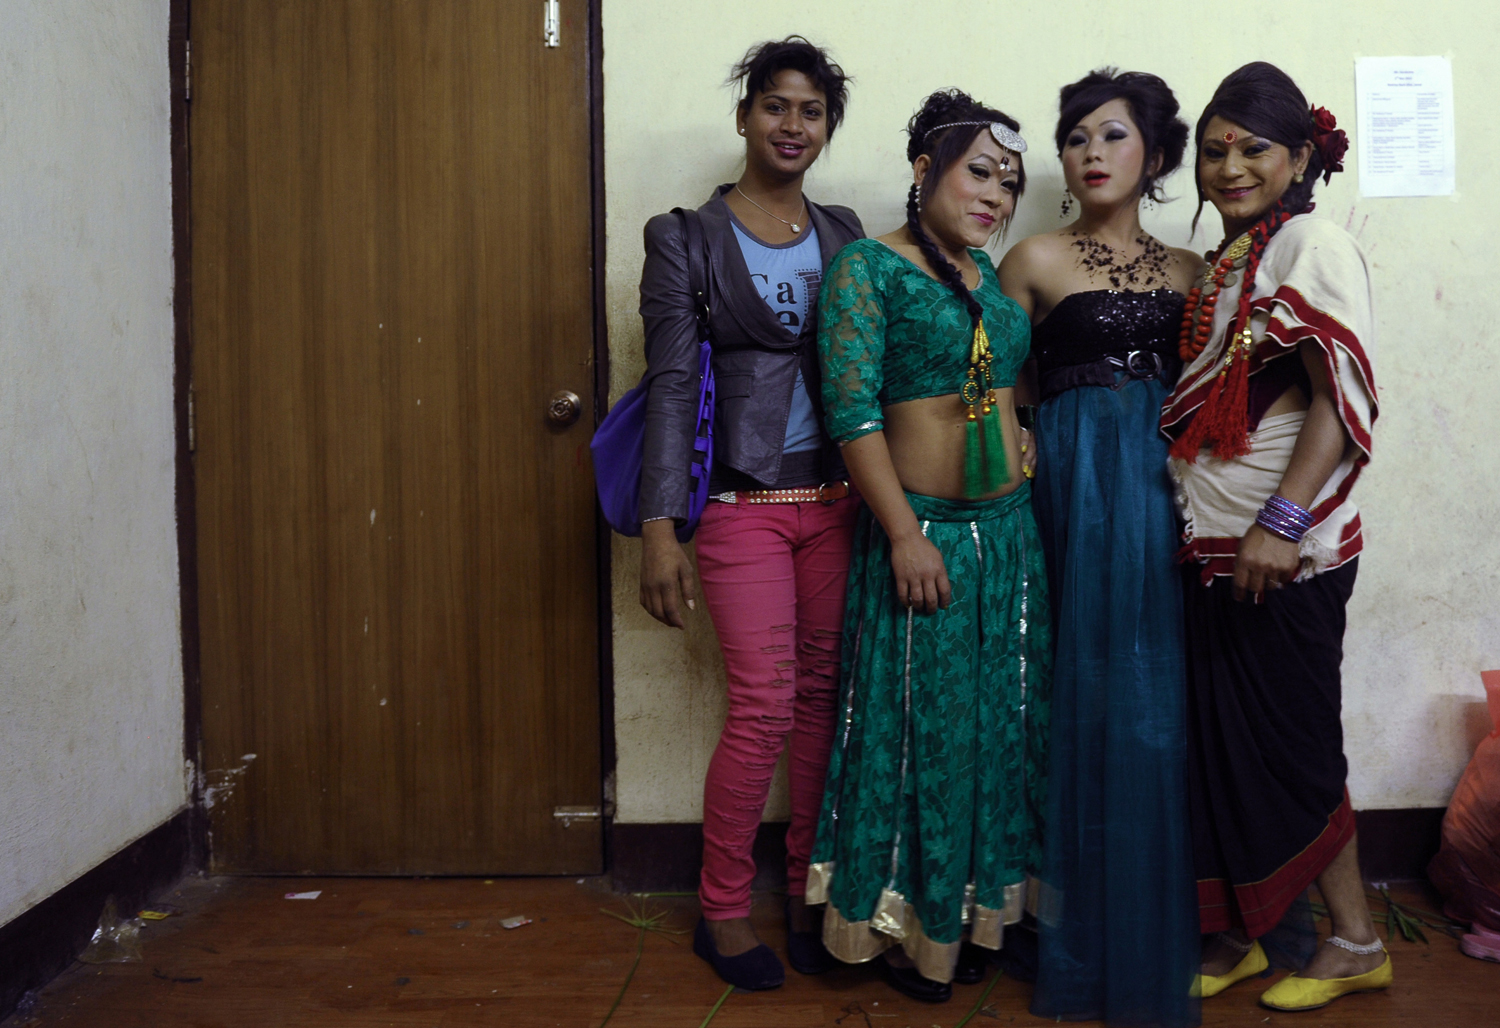 Nepalese transgendered performers pose for photographs backstage in Kathmandu on November 2, 2013.